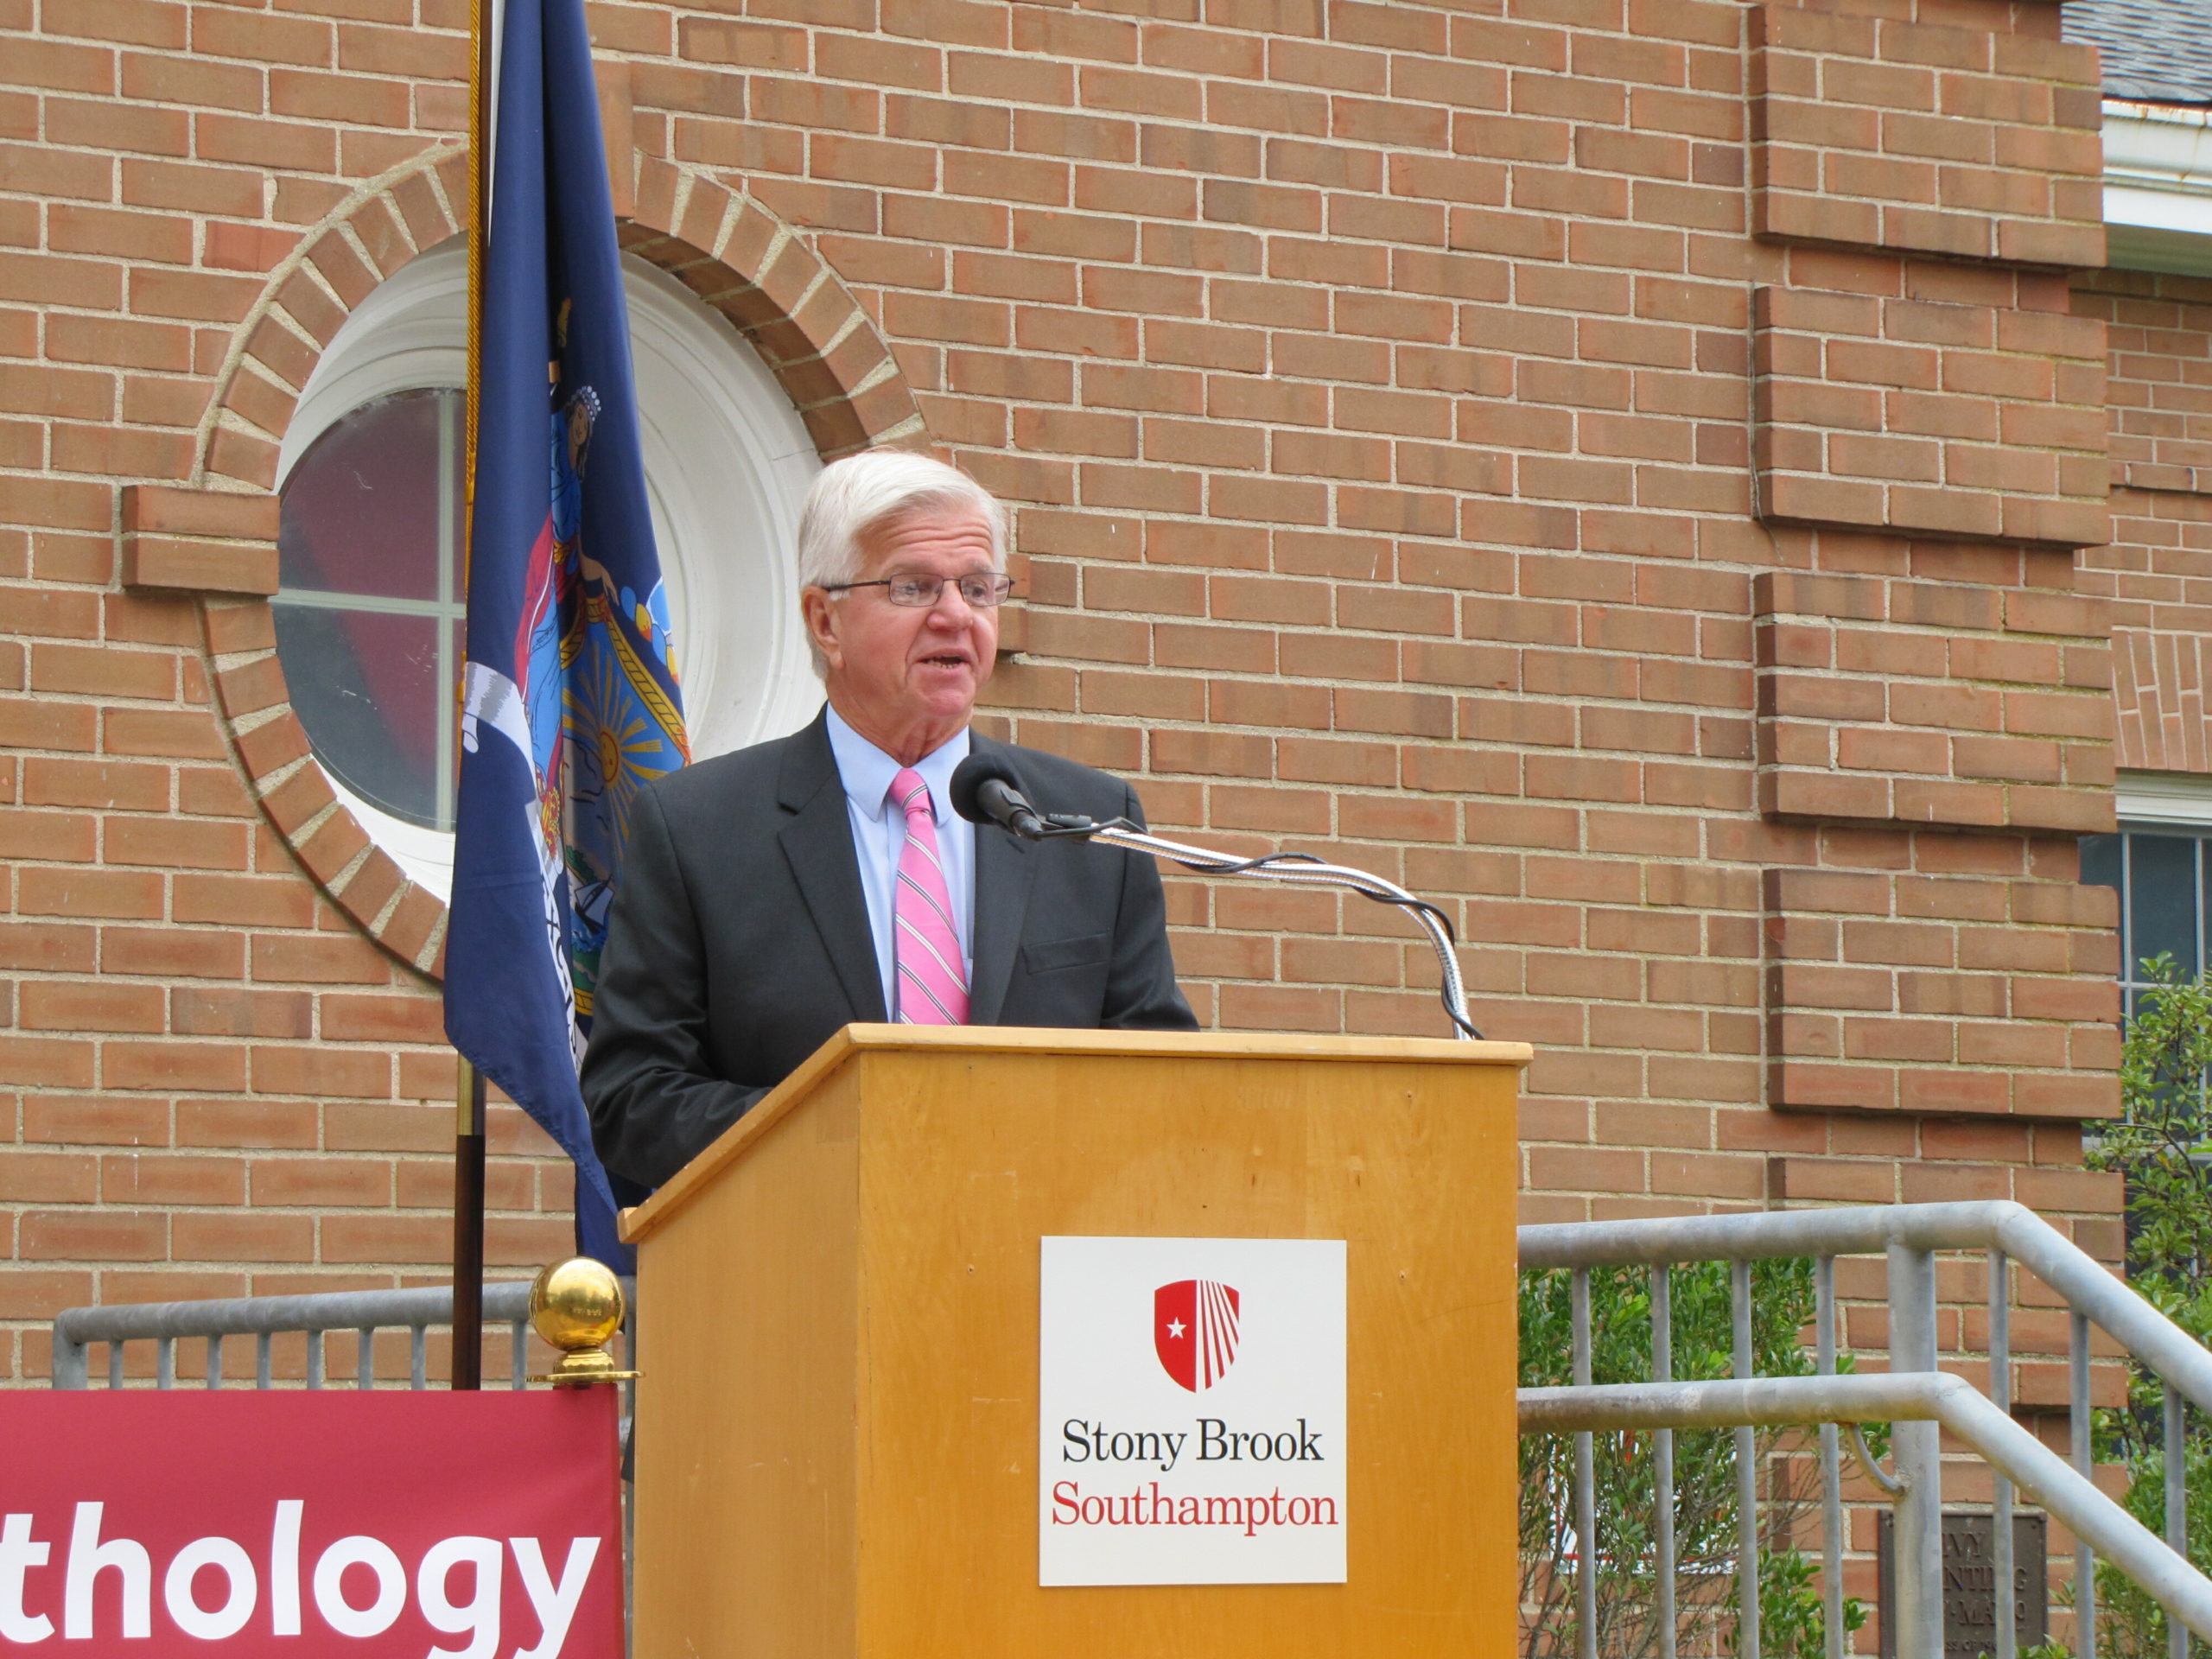 State Assemblyman Fred W. Thiele Jr. spoke as Stony Brook University officially opened its Speech-Language Patholgy Program's new center in the Atlantic Building at the Stony Brook Southampton campus on Friday.